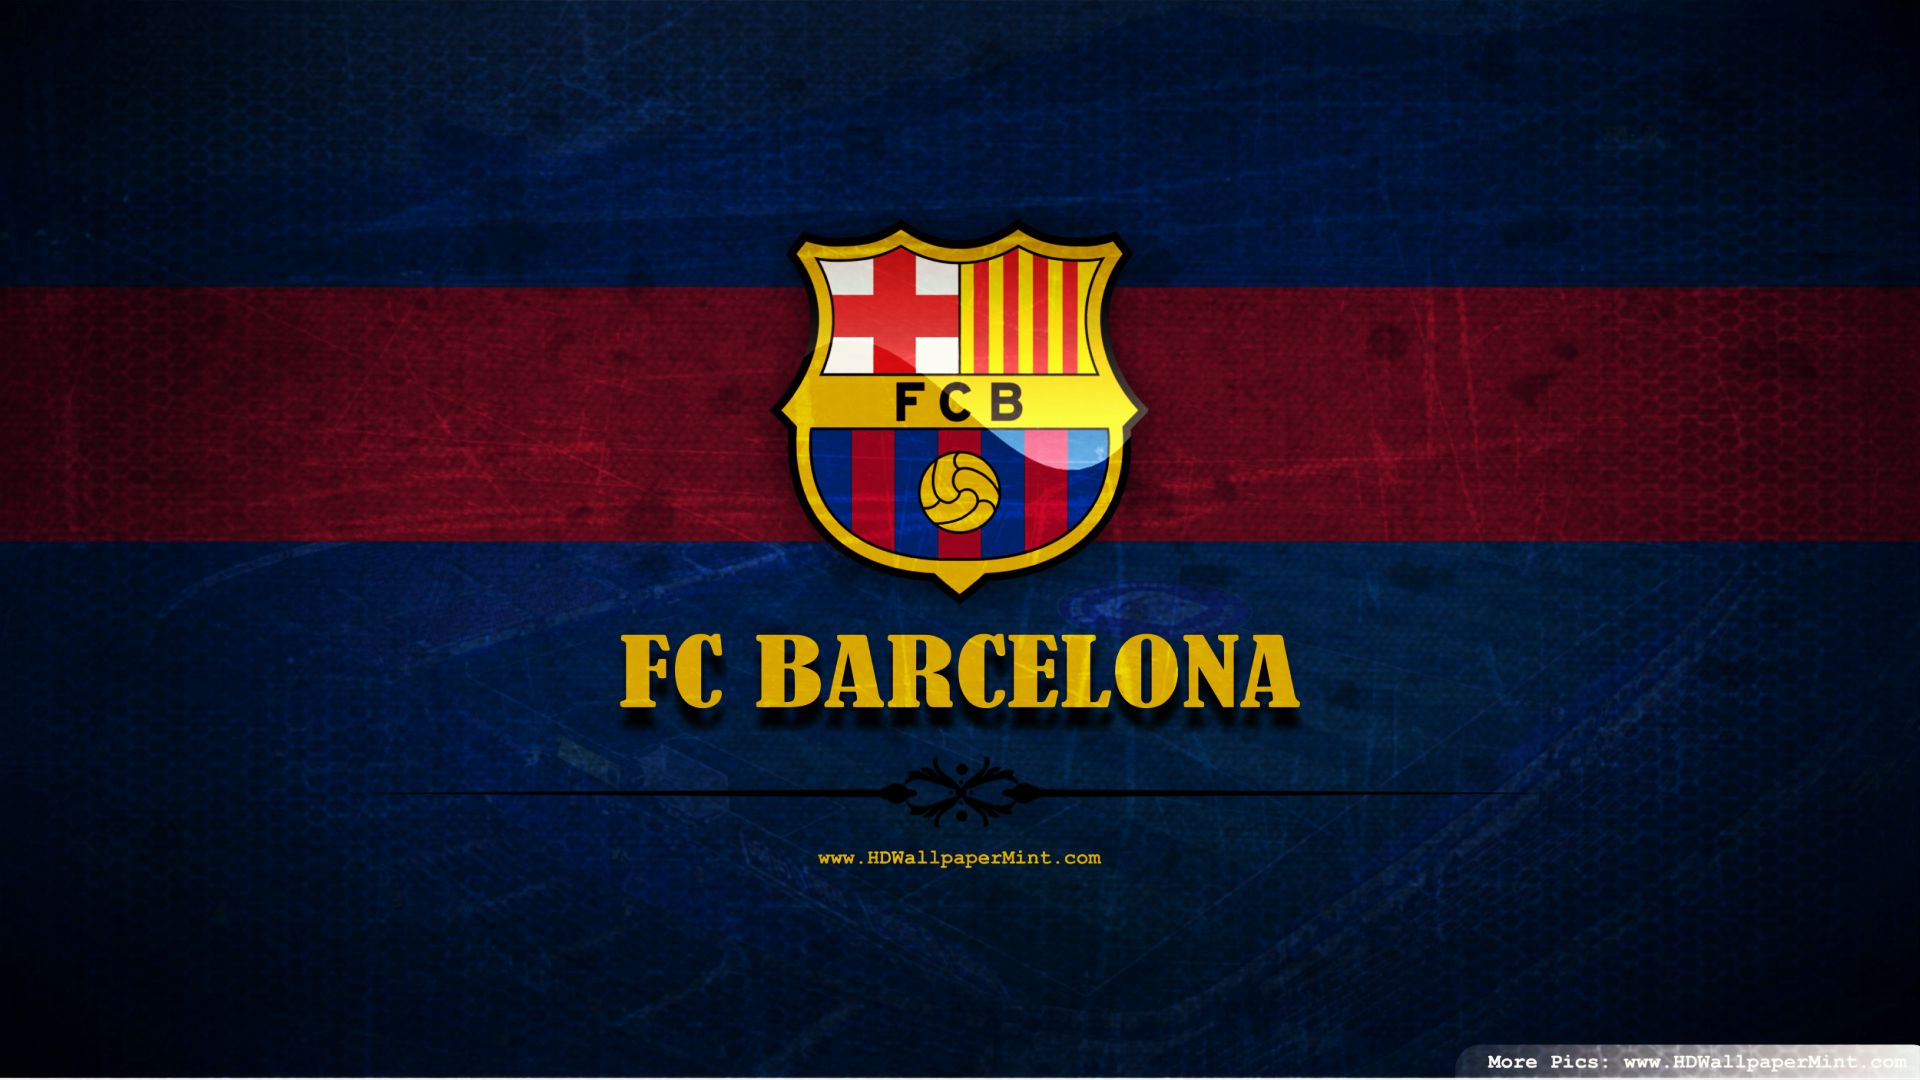 FC Barcelona Wallpapers HD 2016 1920x1080